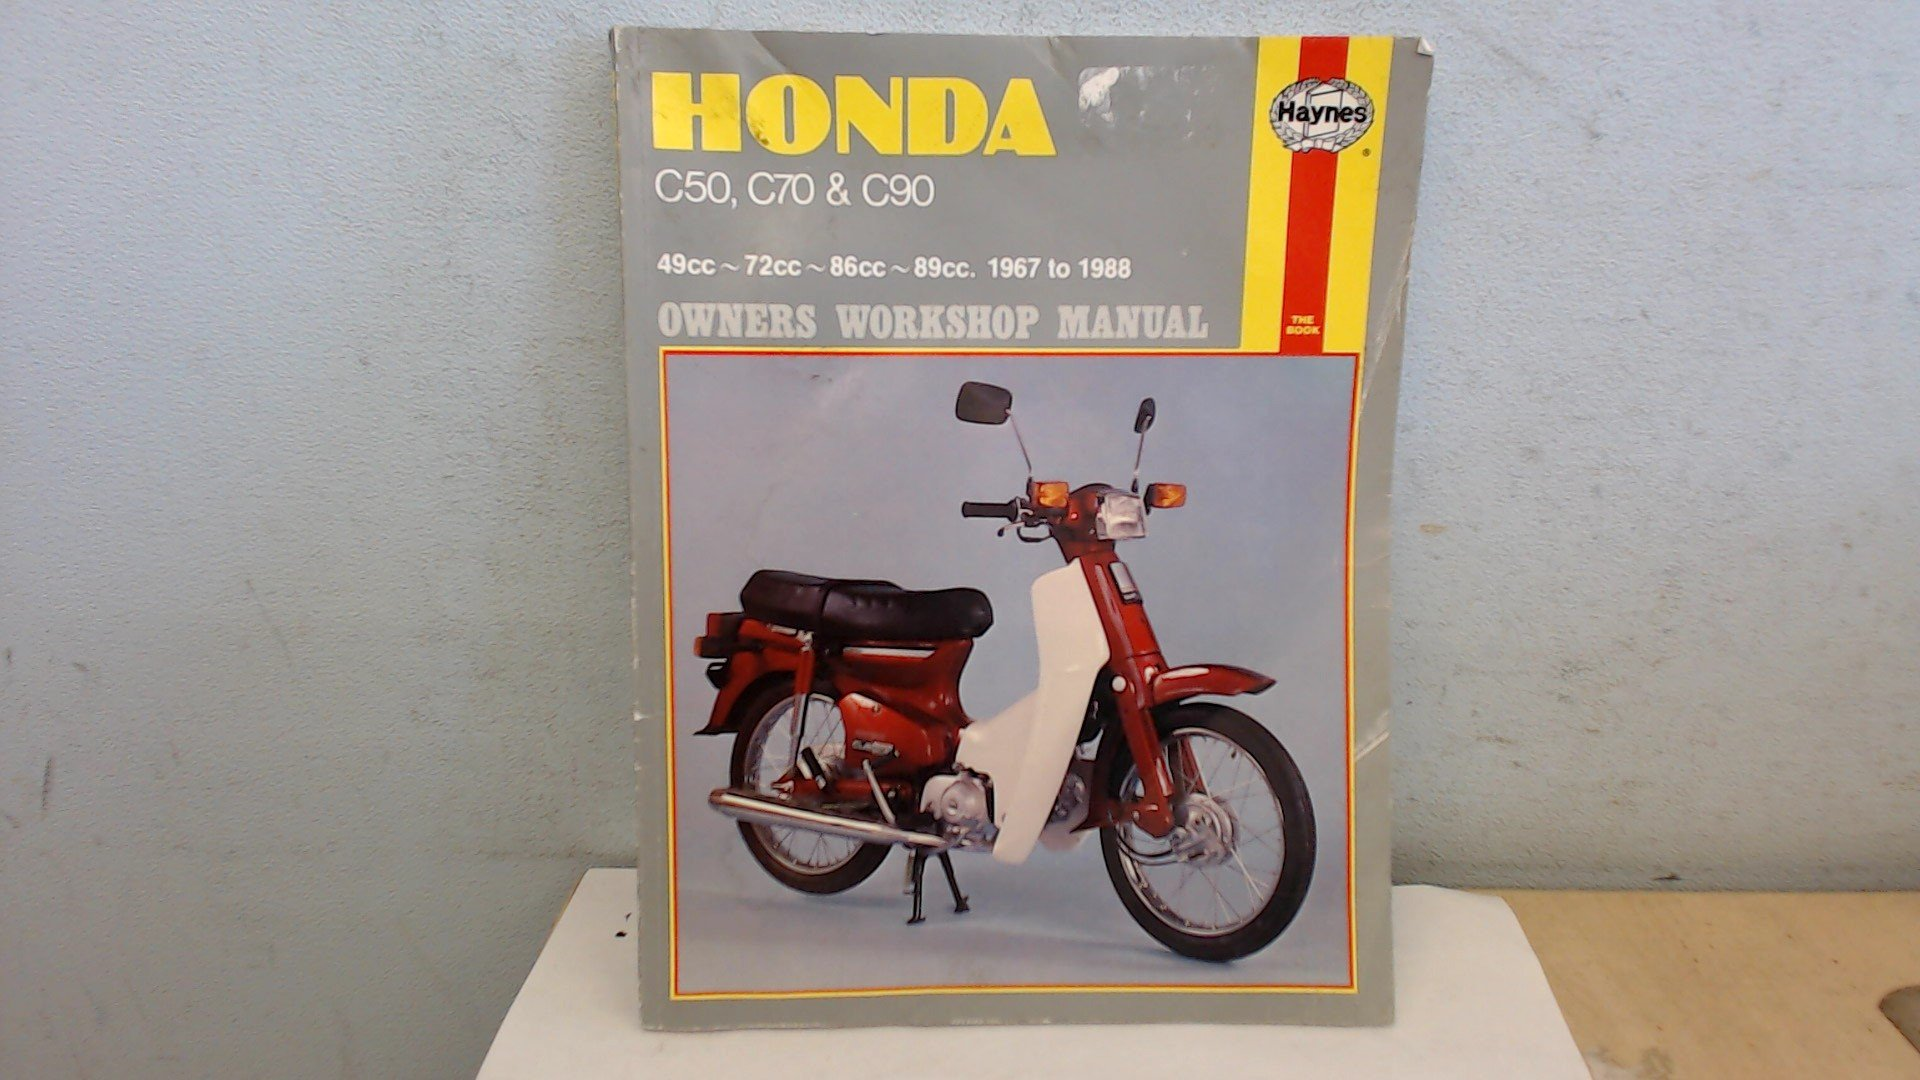 Buy Honda C50, C70 and C90 Owner's Workshop Manual Book Online at Low  Prices in India | Honda C50, C70 and C90 Owner's Workshop Manual Reviews &  Ratings ...